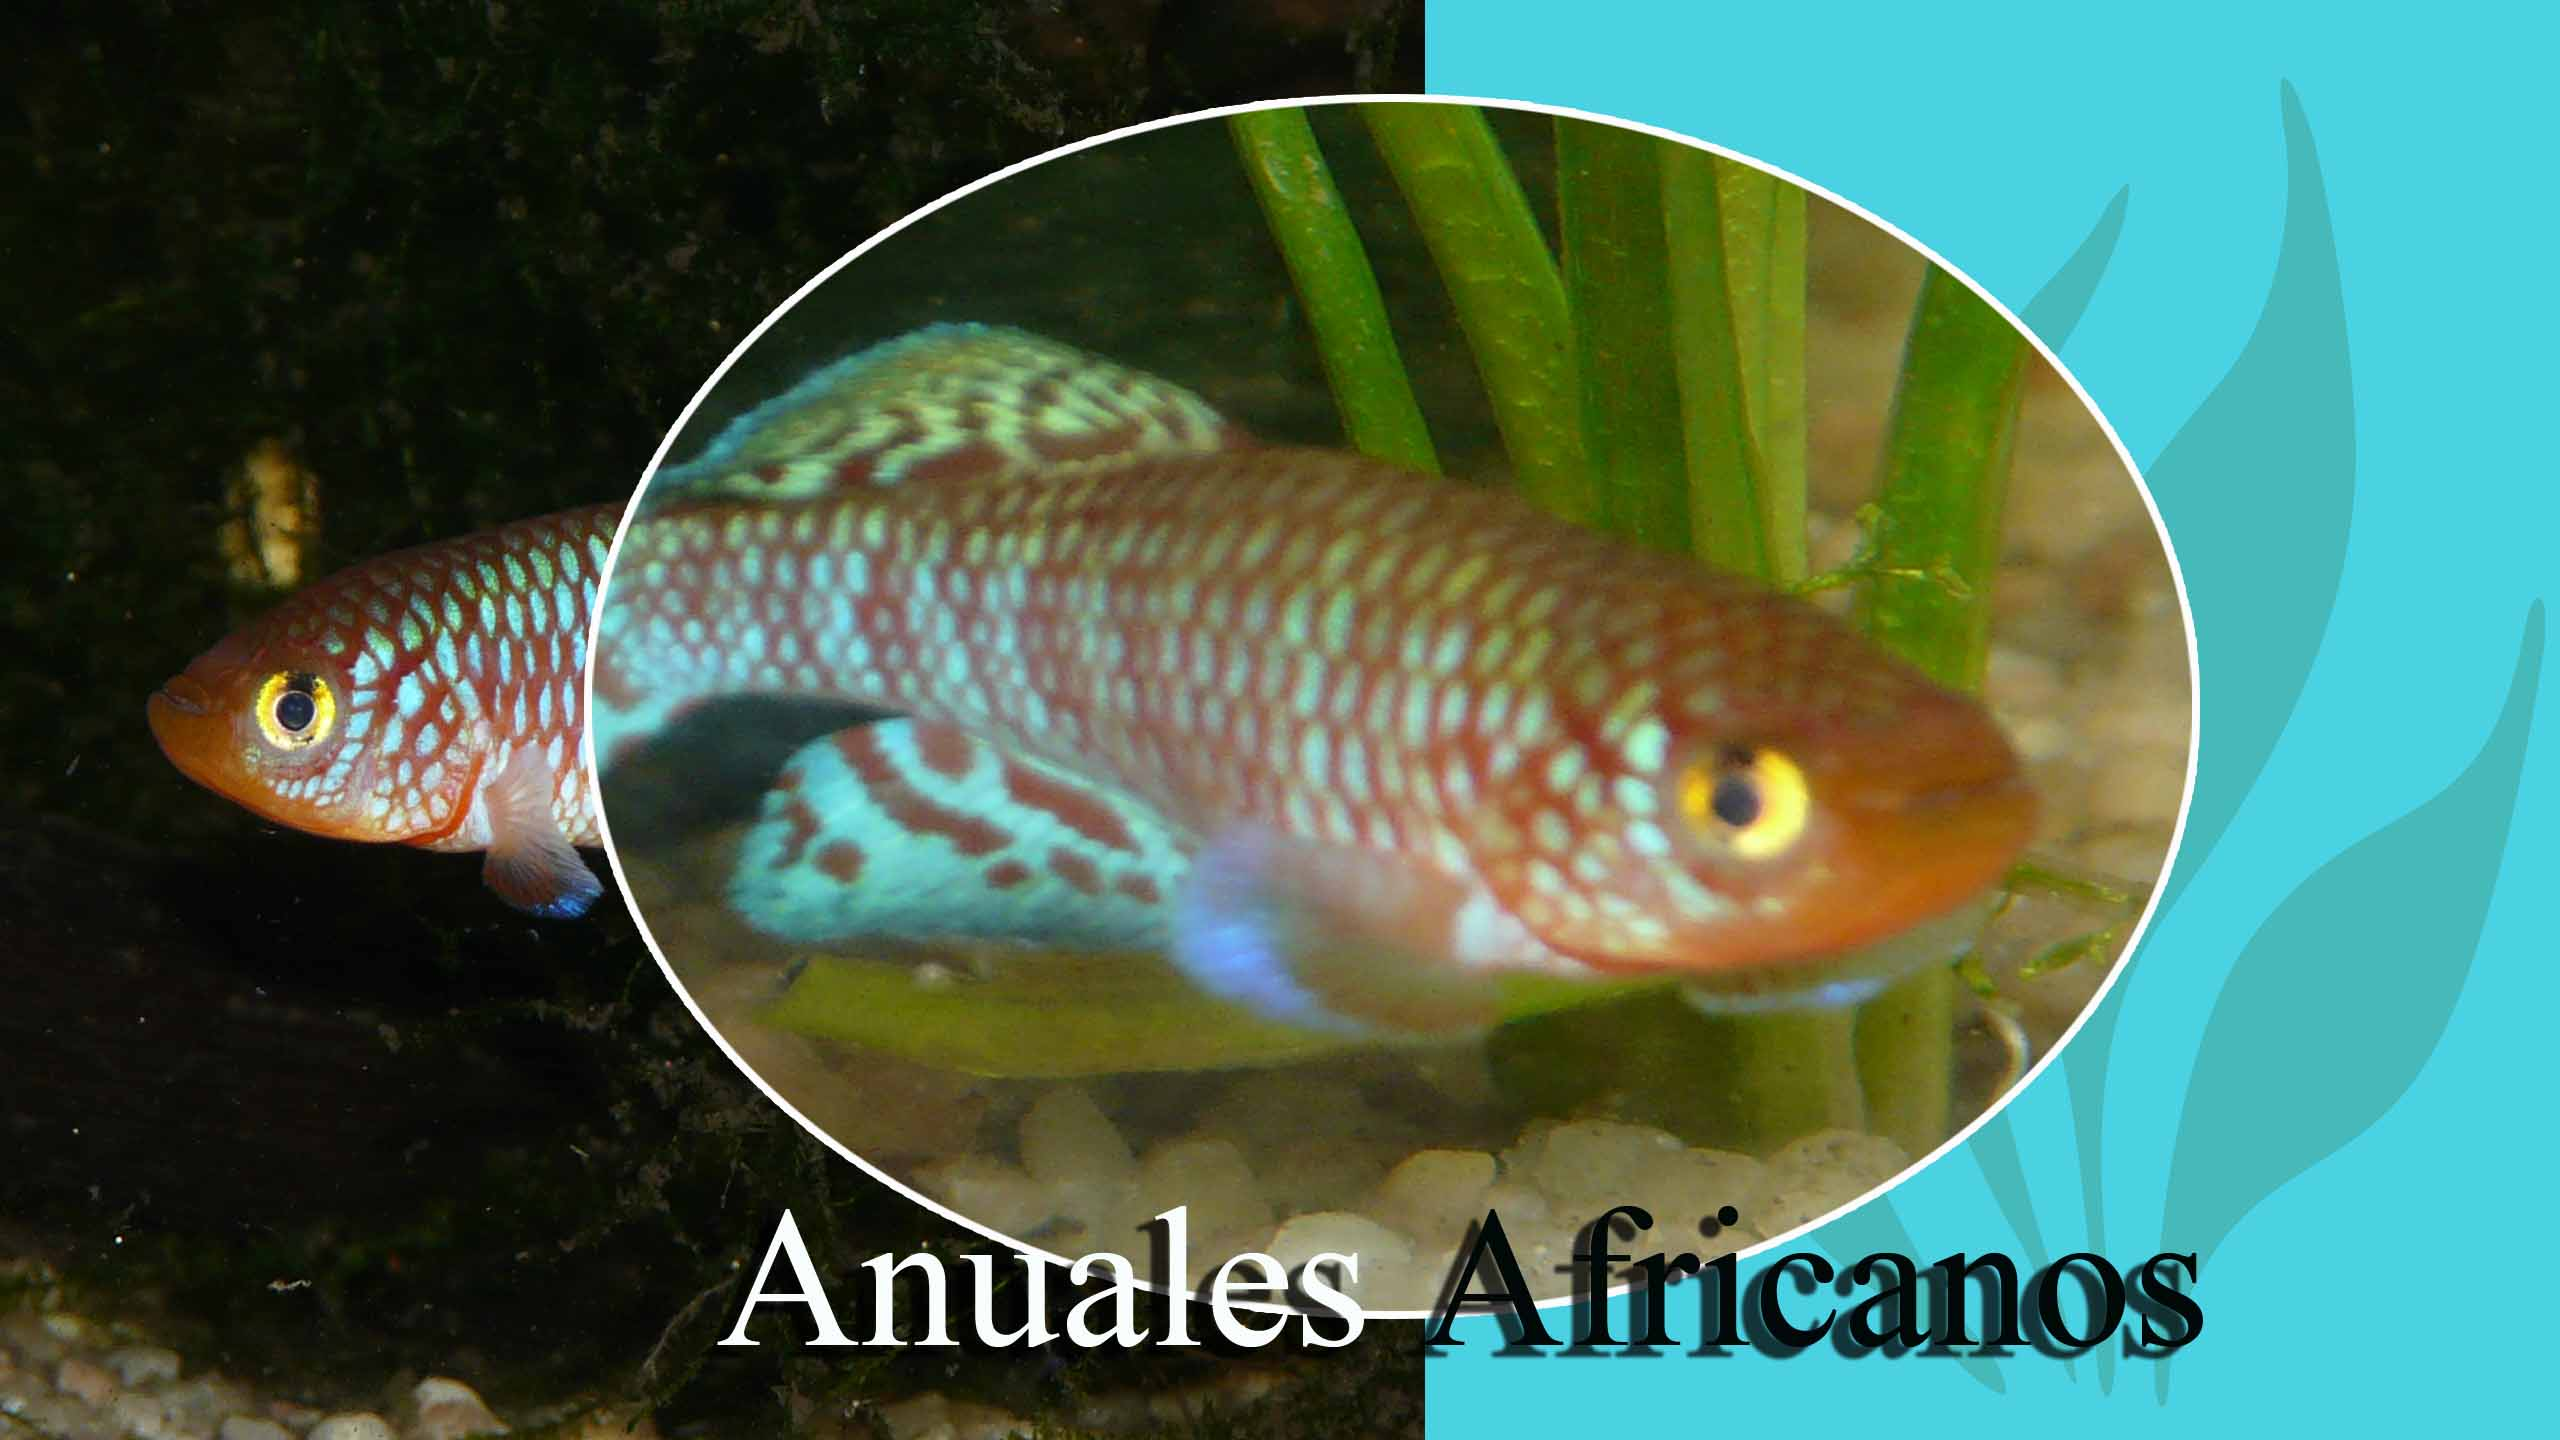 anuales africanos